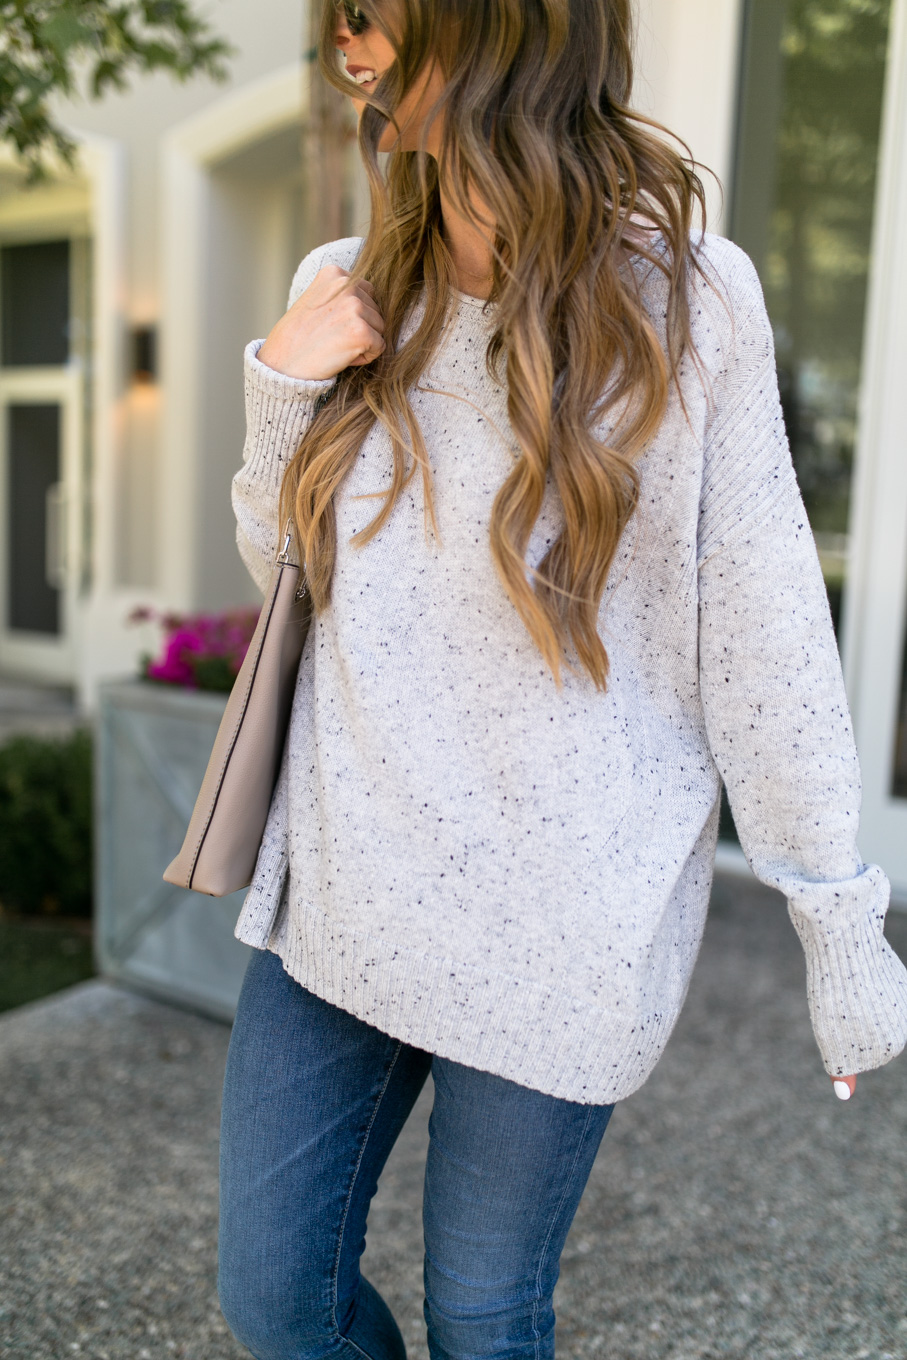 Daryl-Ann Denner wears zip-back pullover sweater from nordstrom anniversary sale 2017 with loose waves